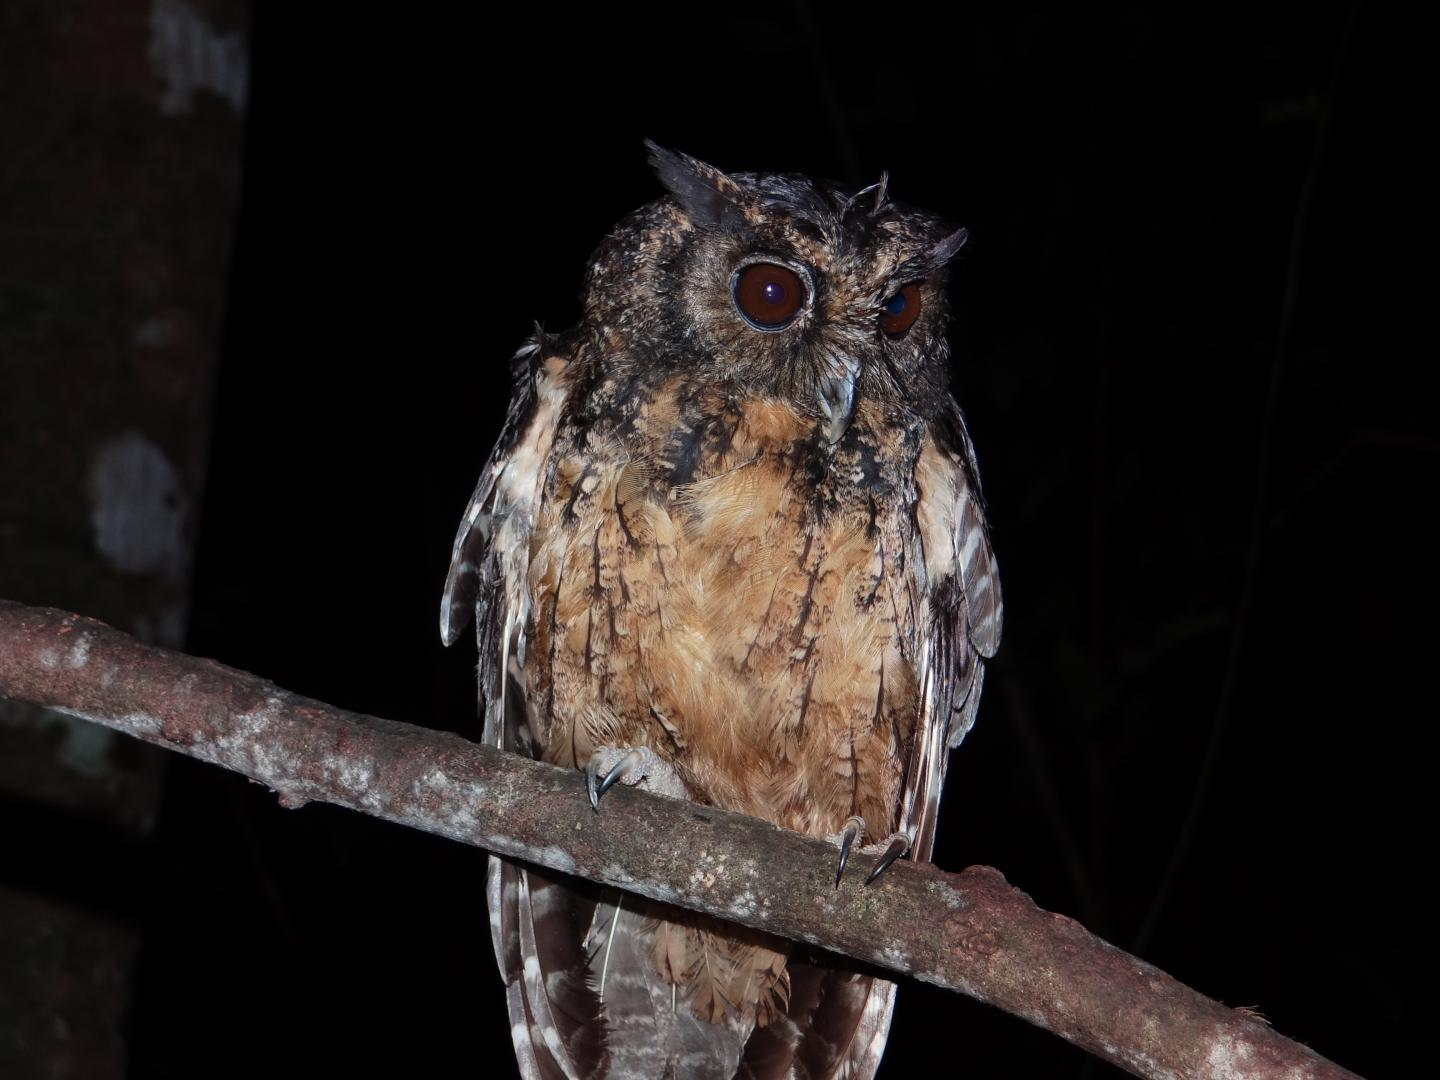 One of the newly described species, the Xingu screech owl (Megascops stangiae) from the Amazon. Image by Kleiton Silva.